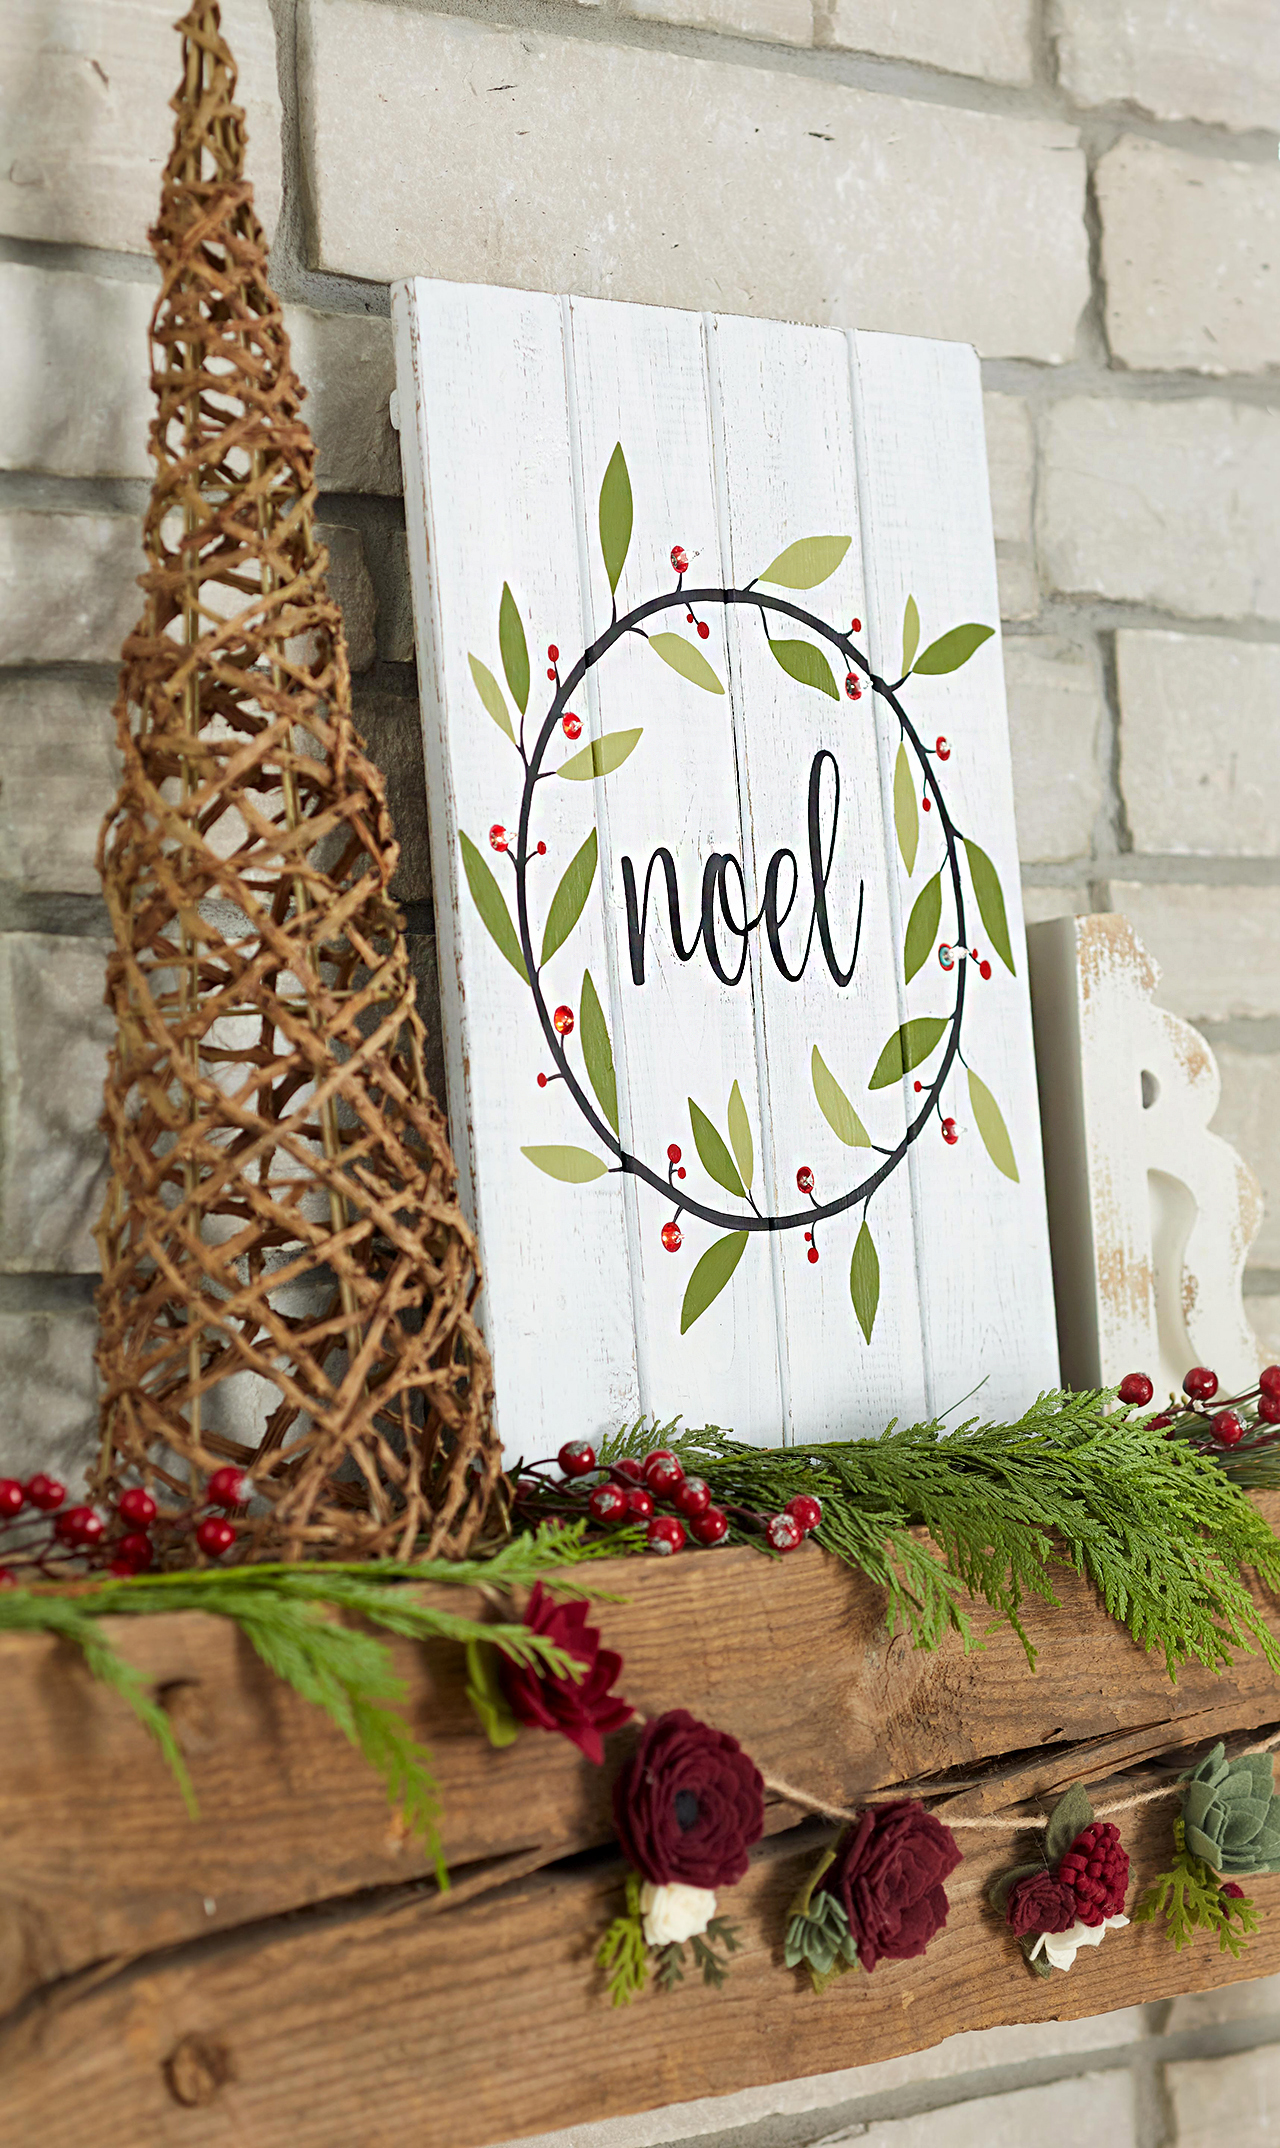 painted wood sign with lights and wreath design